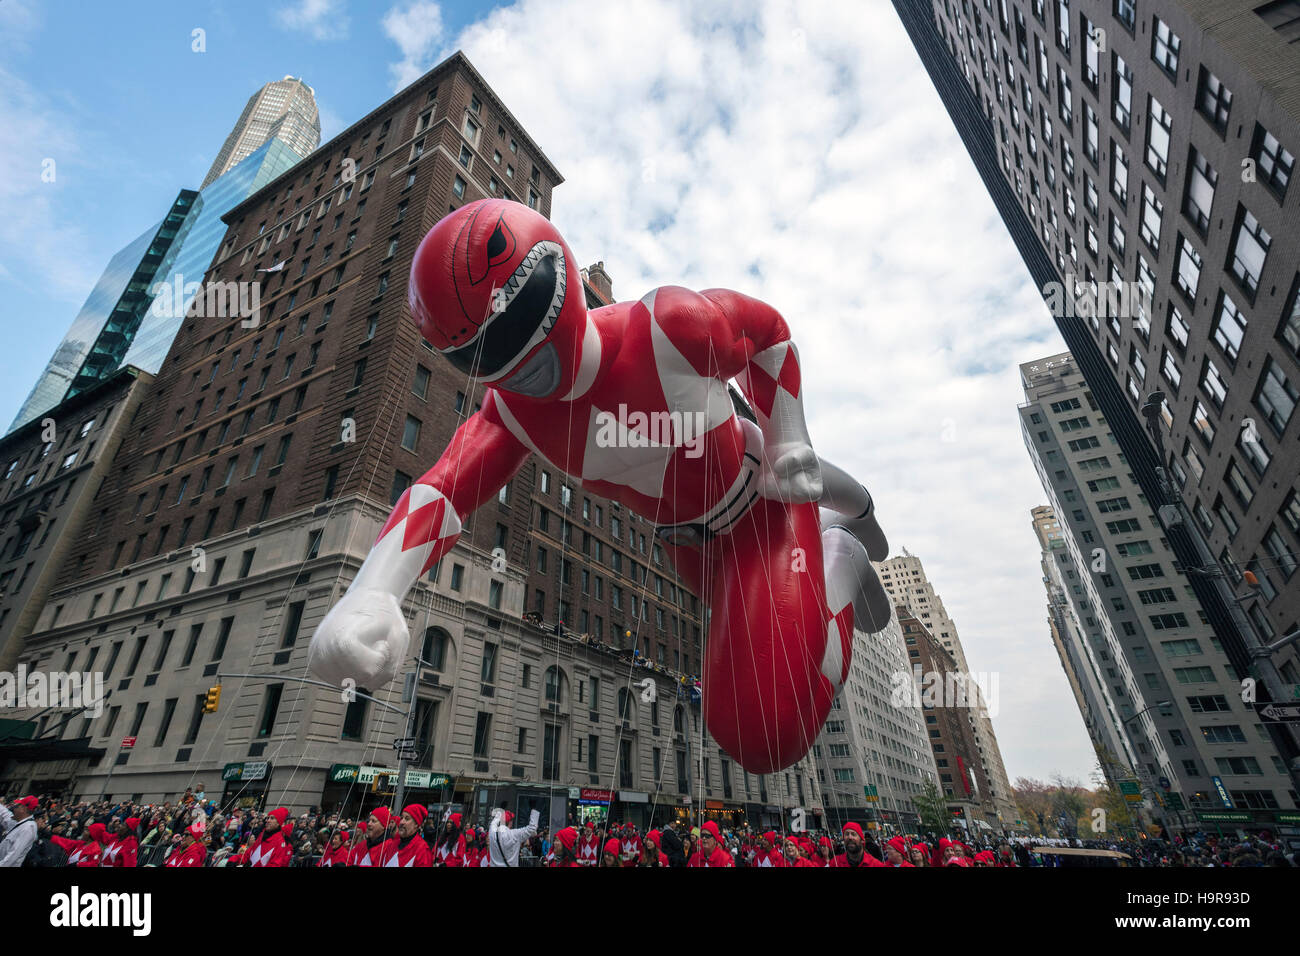 "New York, USA. 24. November 2016. Foto aufgenommen am 24. November 2016 zeigt den Ballon ""Red Mighty Morphin Stockbild"